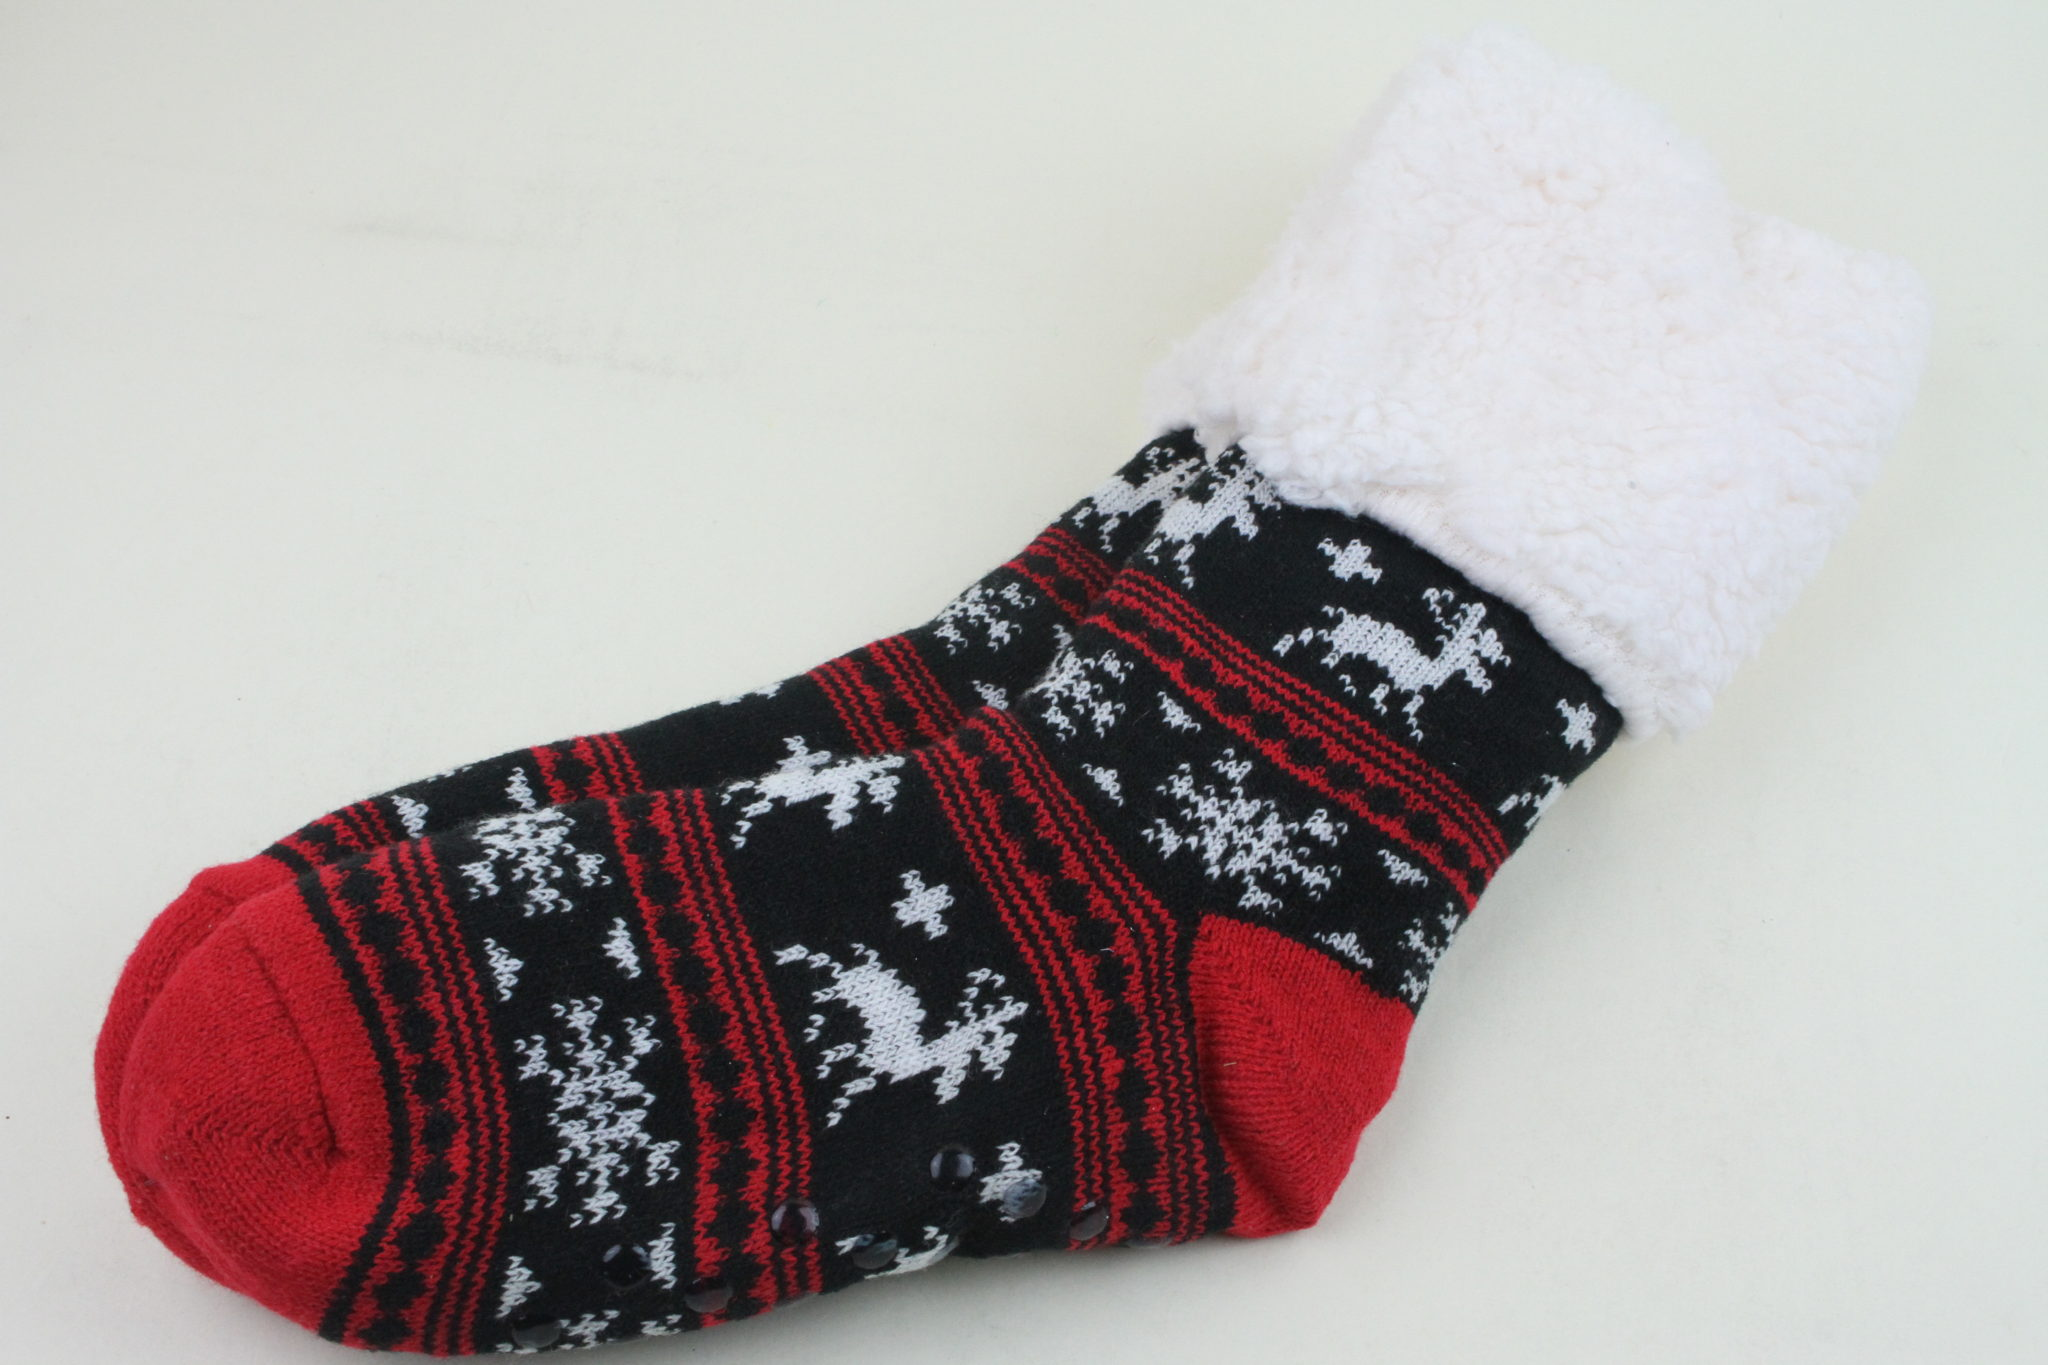 Northpoint Sherpa Cozy Socks